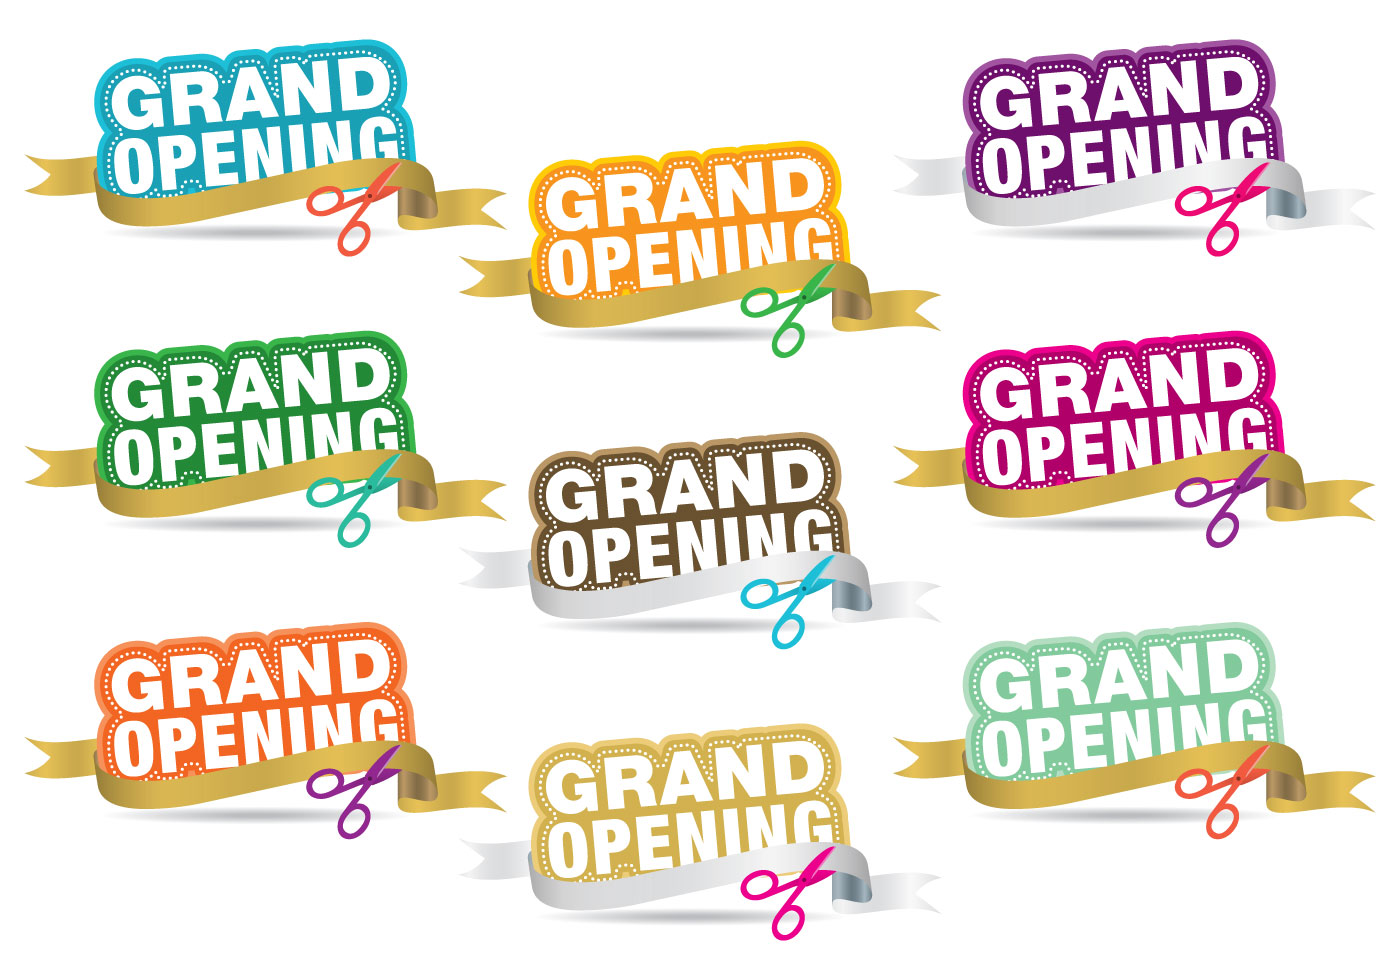 Invitation Heading Font Grand Opening Titles - Download Free Vector Art, Stock